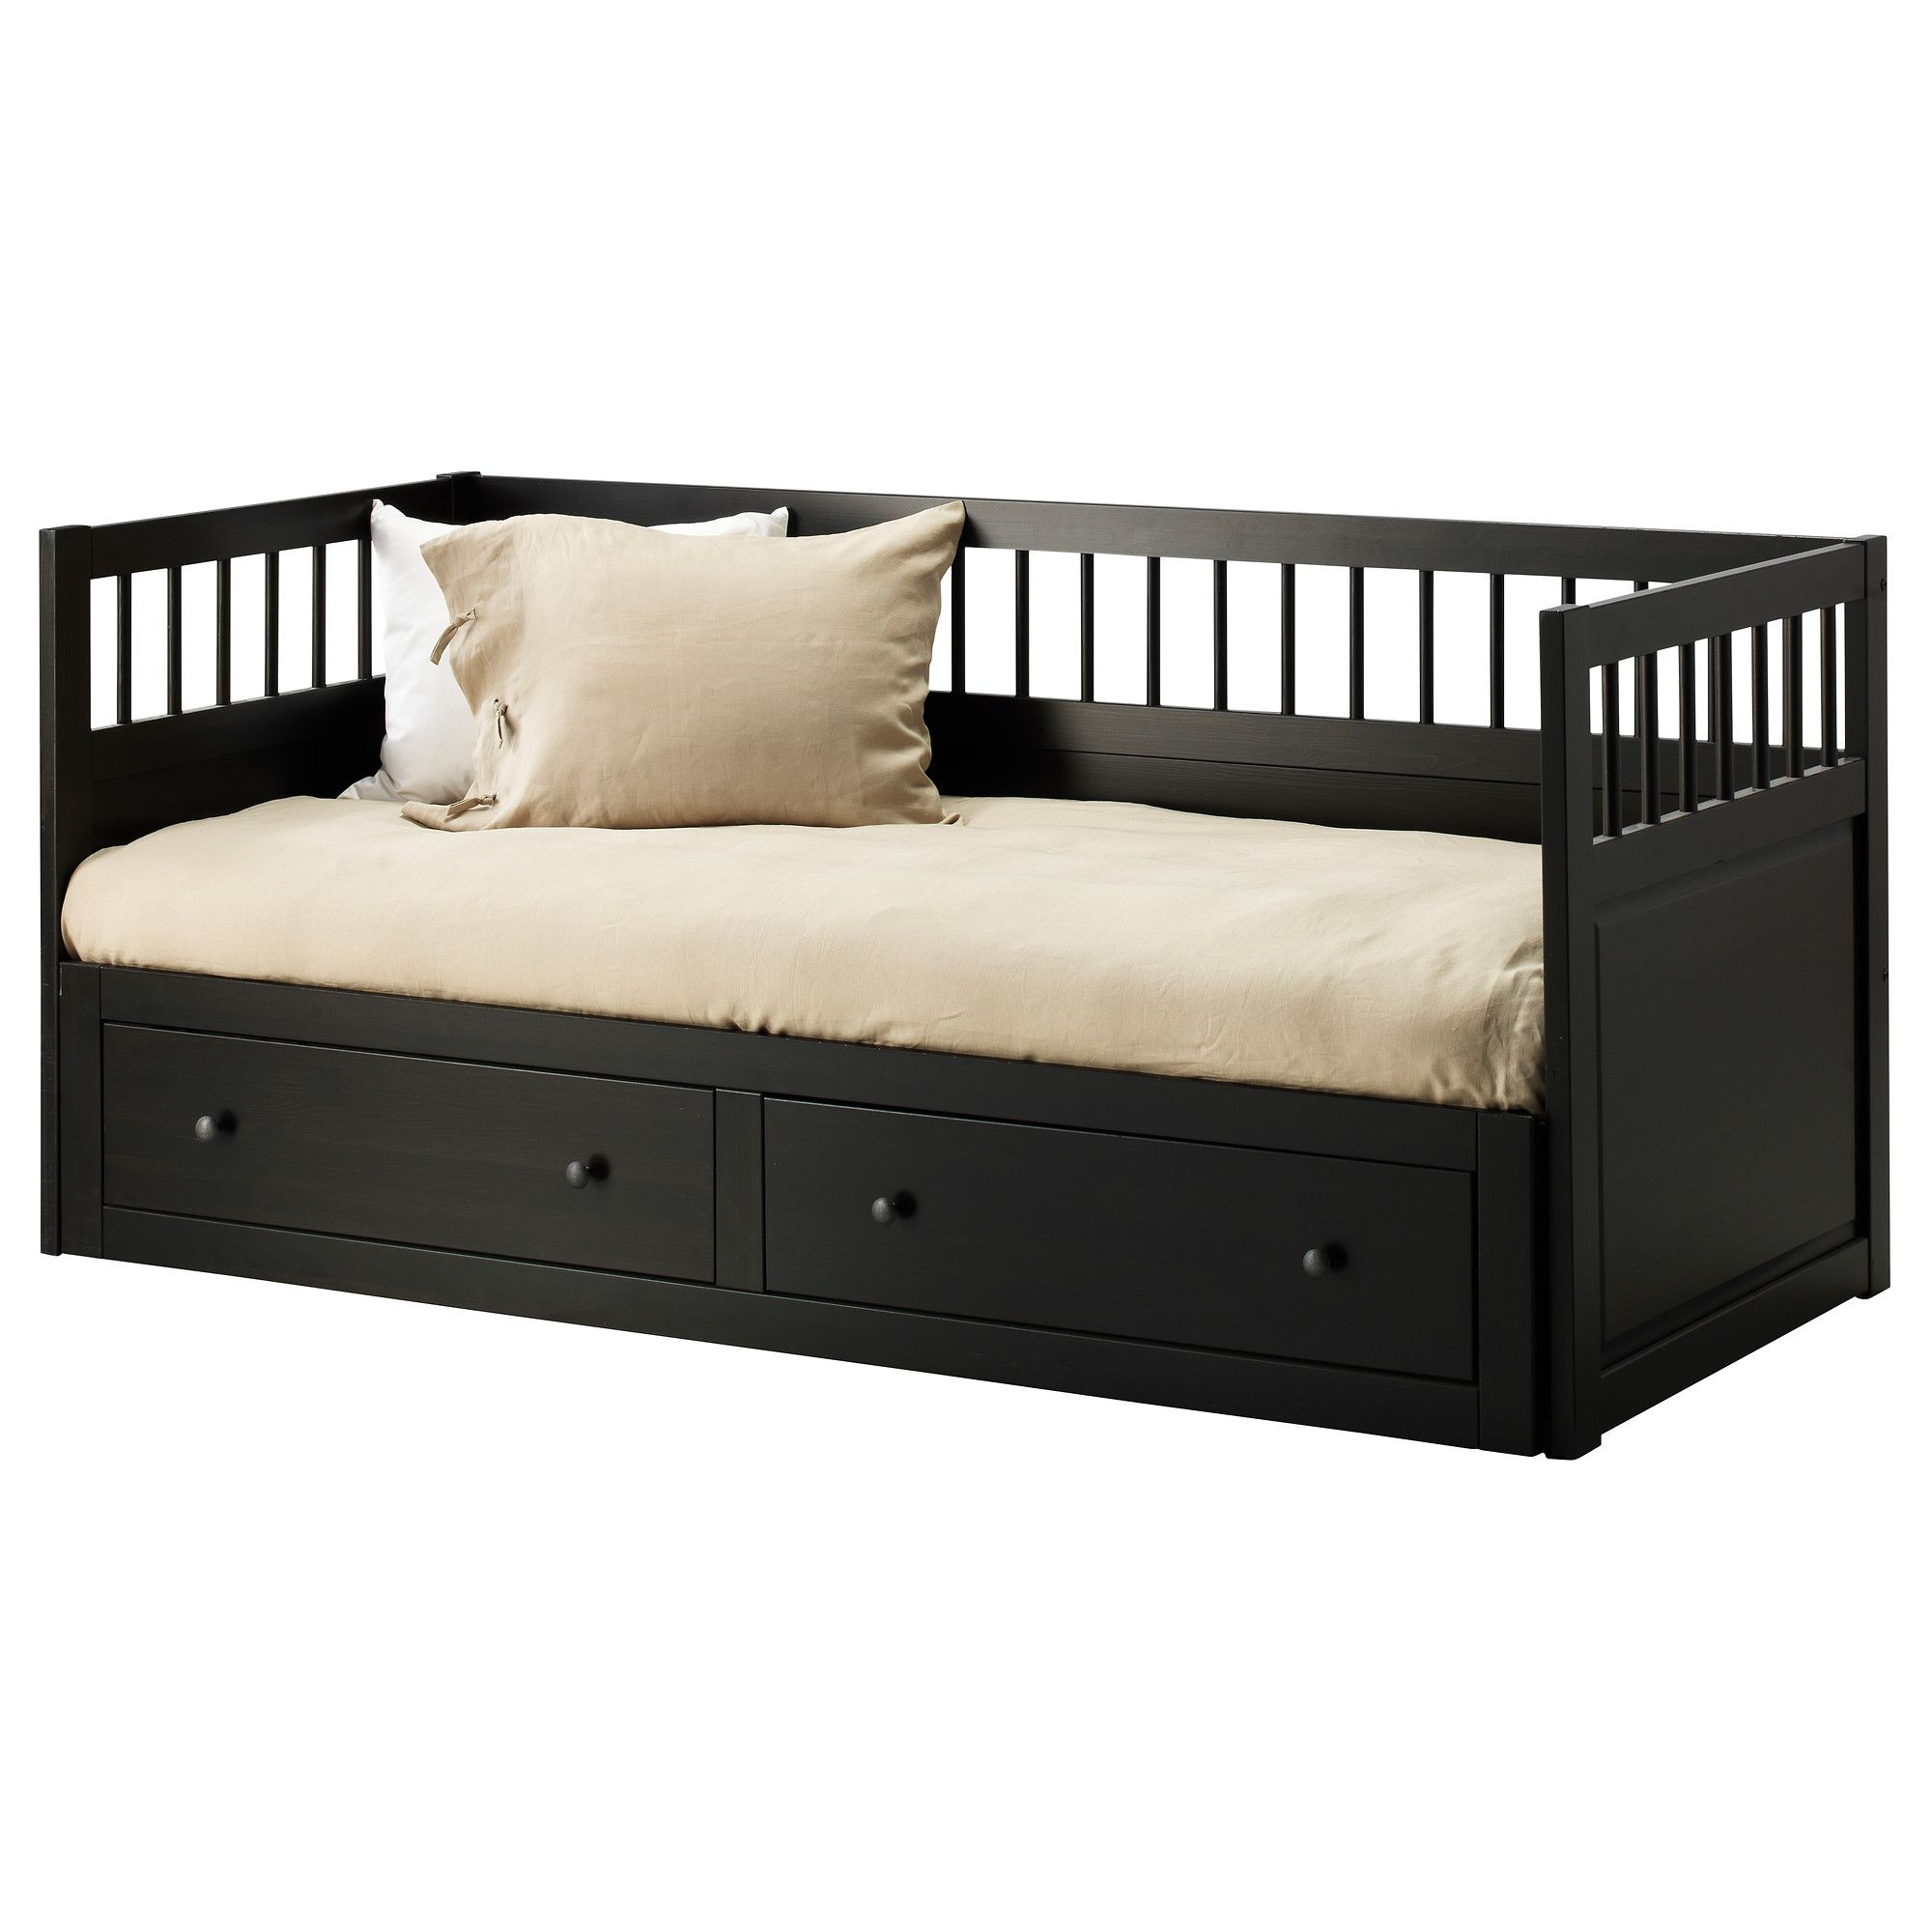 Uitschuifbaar Bed Ikea Hemnes Daybed Frame With 2 Drawers - Ikea For When The